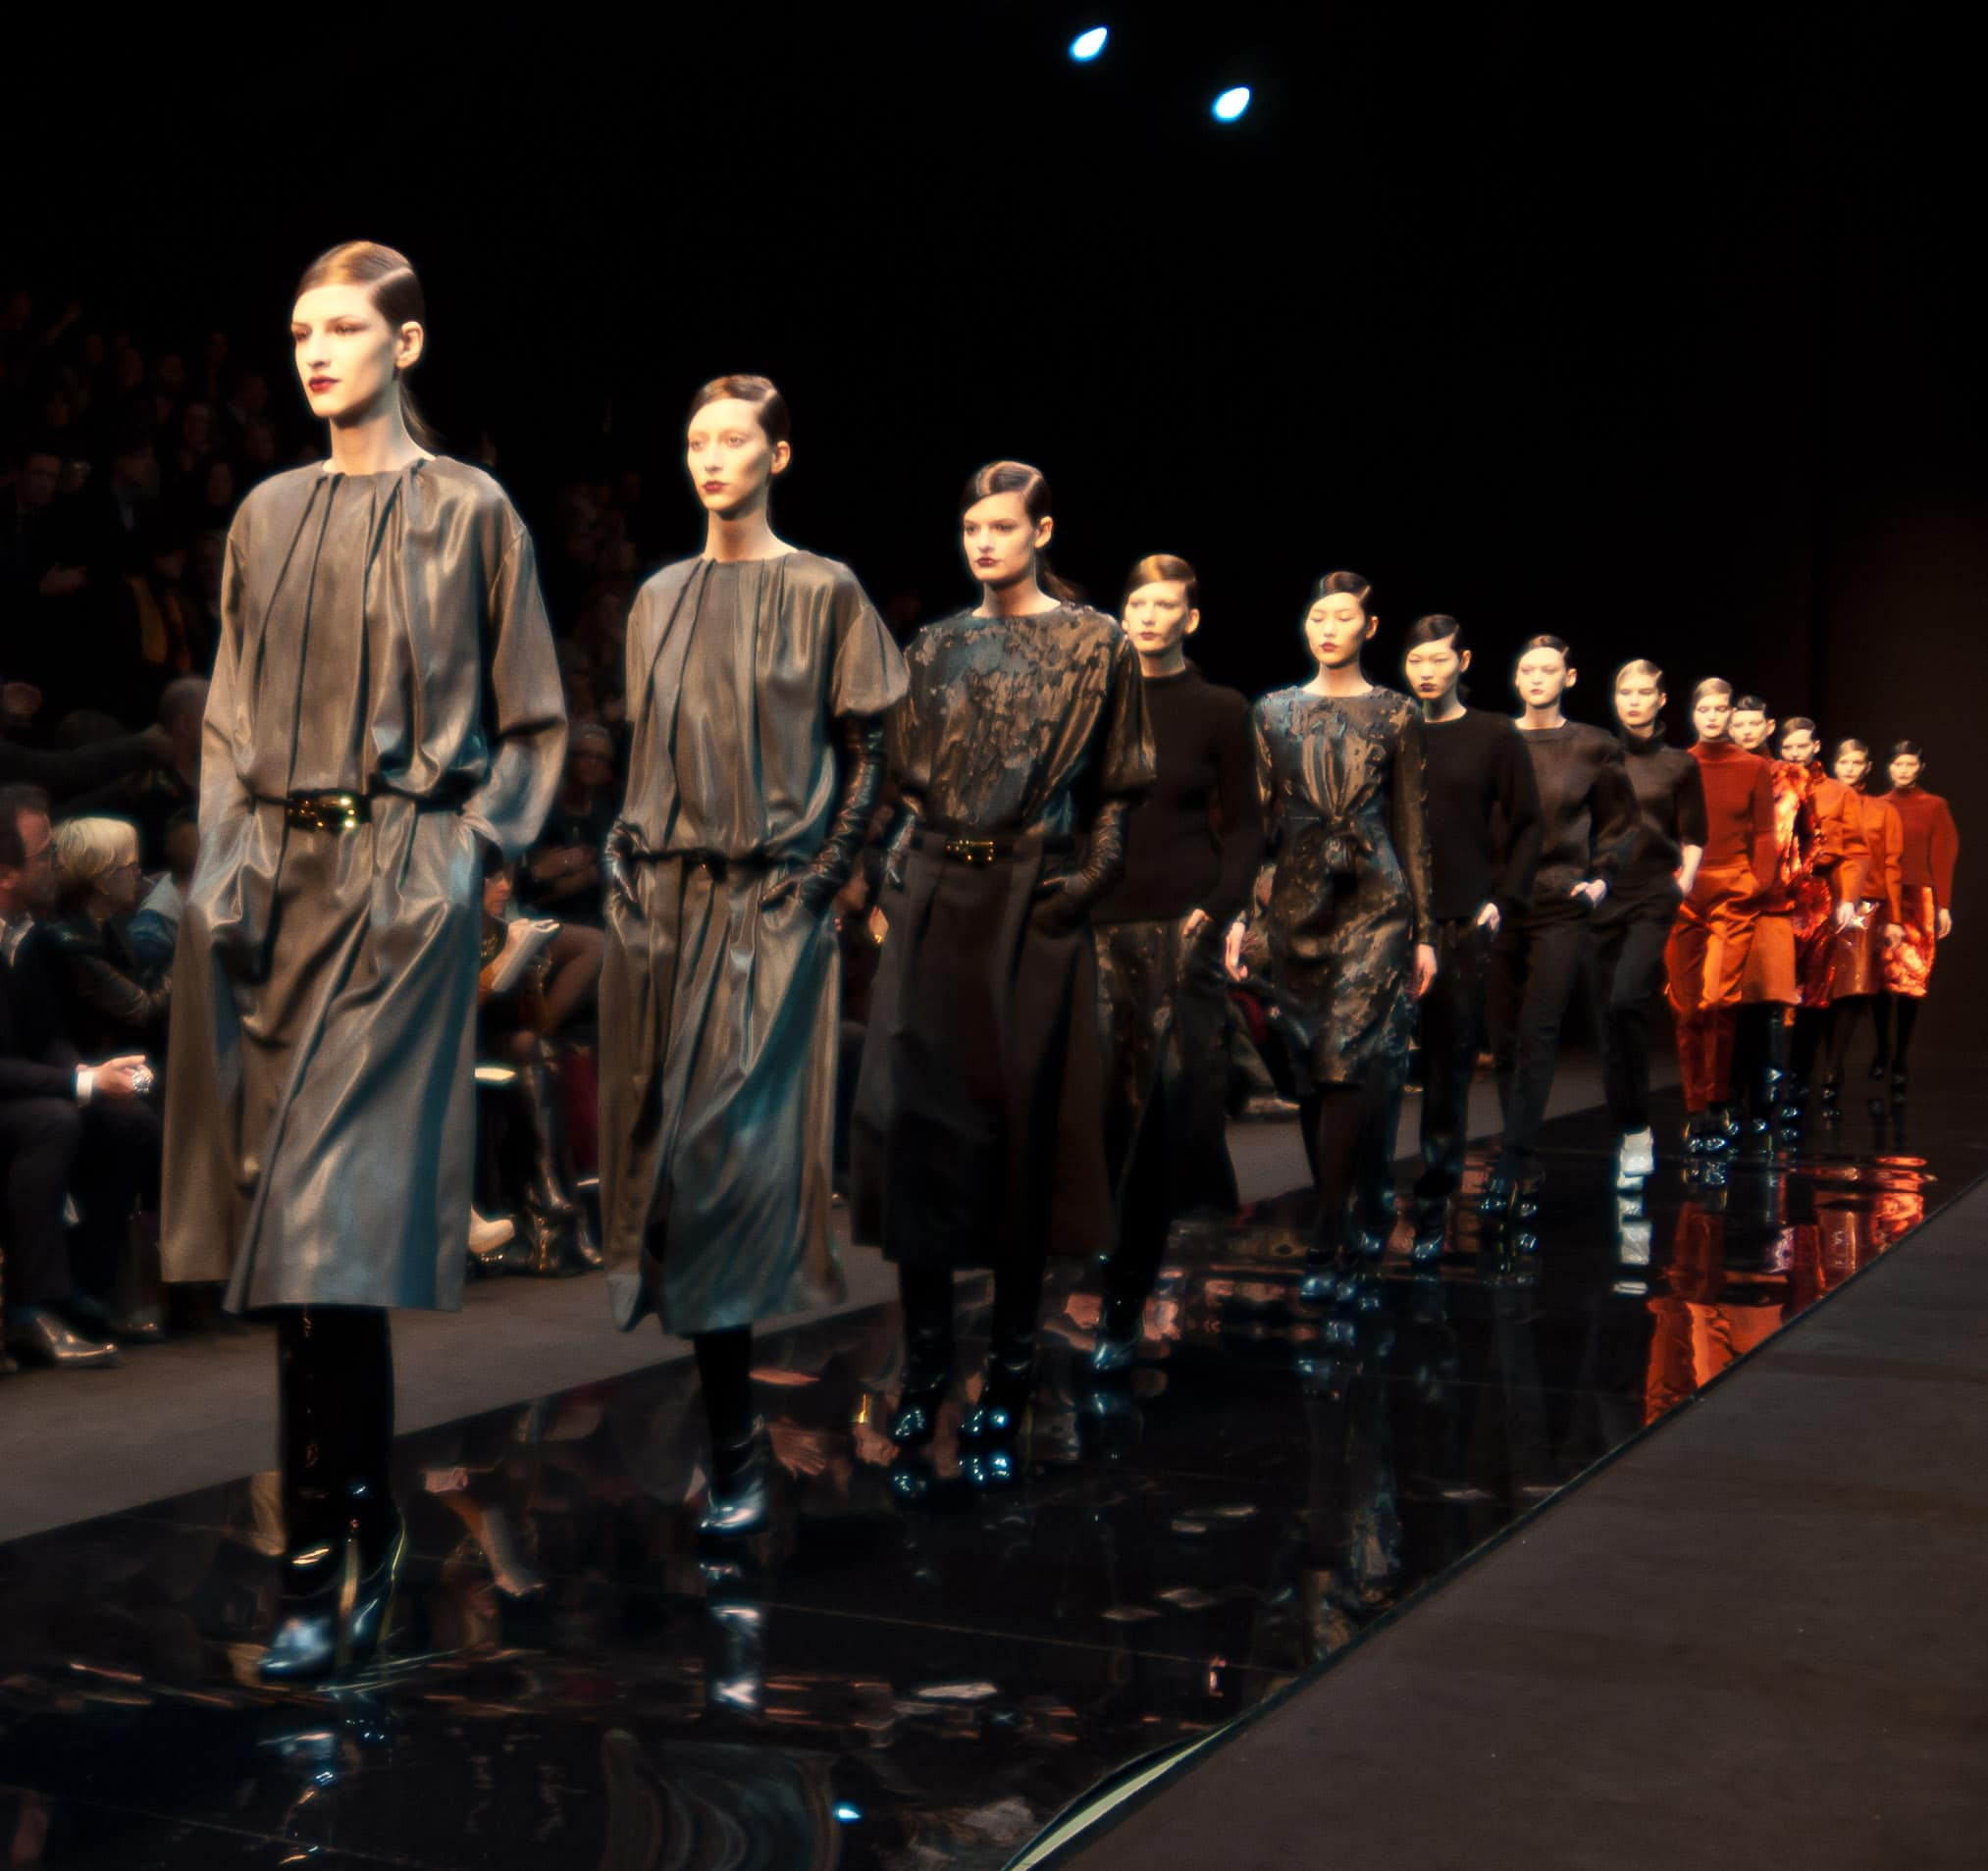 Photography via Dan Stern. Paris Fashion week 2012 Autumn/Winter.